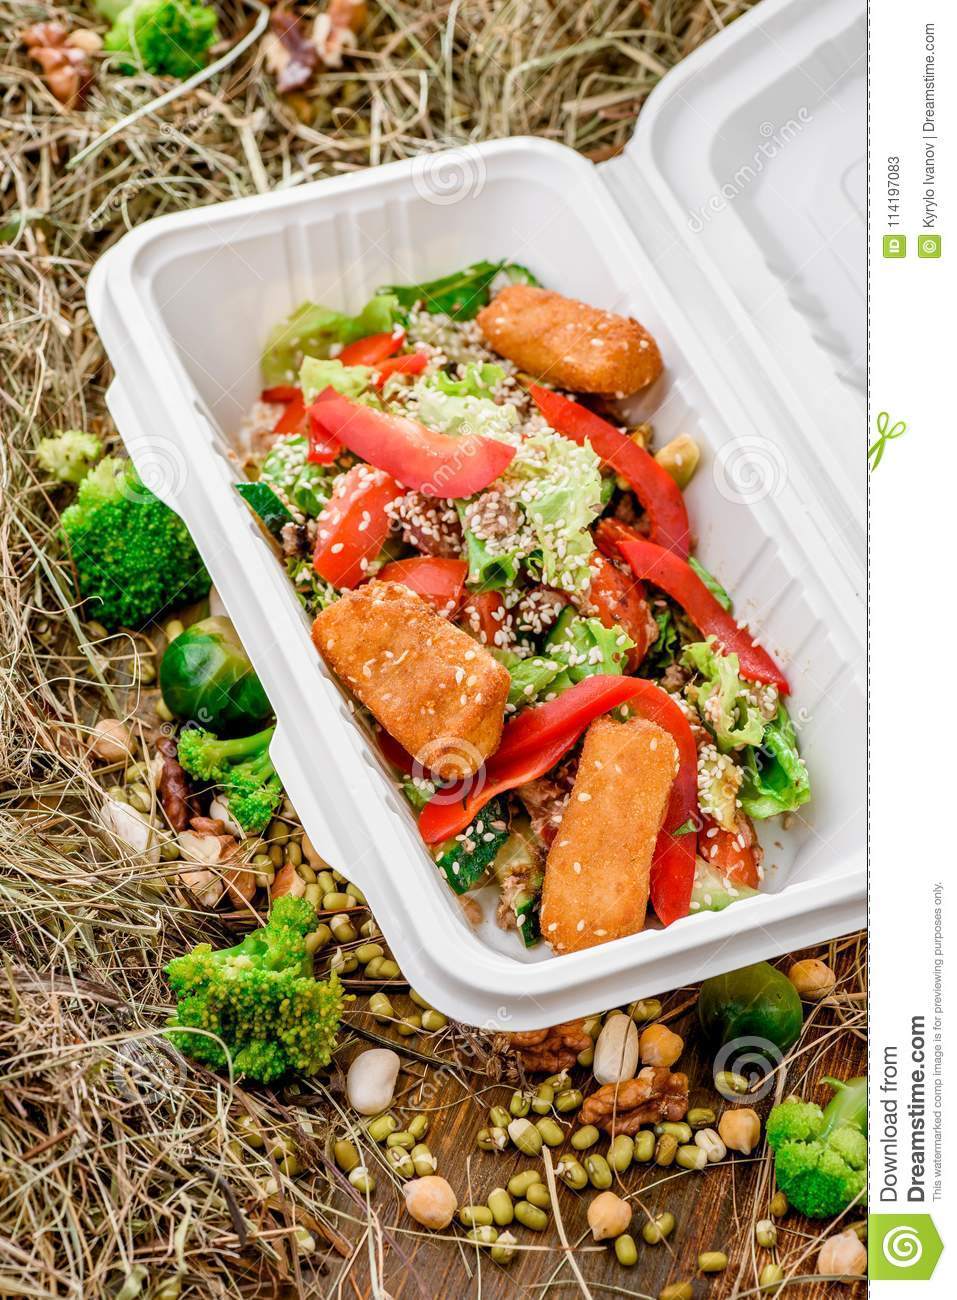 Cheese Sticks With Salad In A White Box Stock Image Image Of Restaurant Meat 114197083